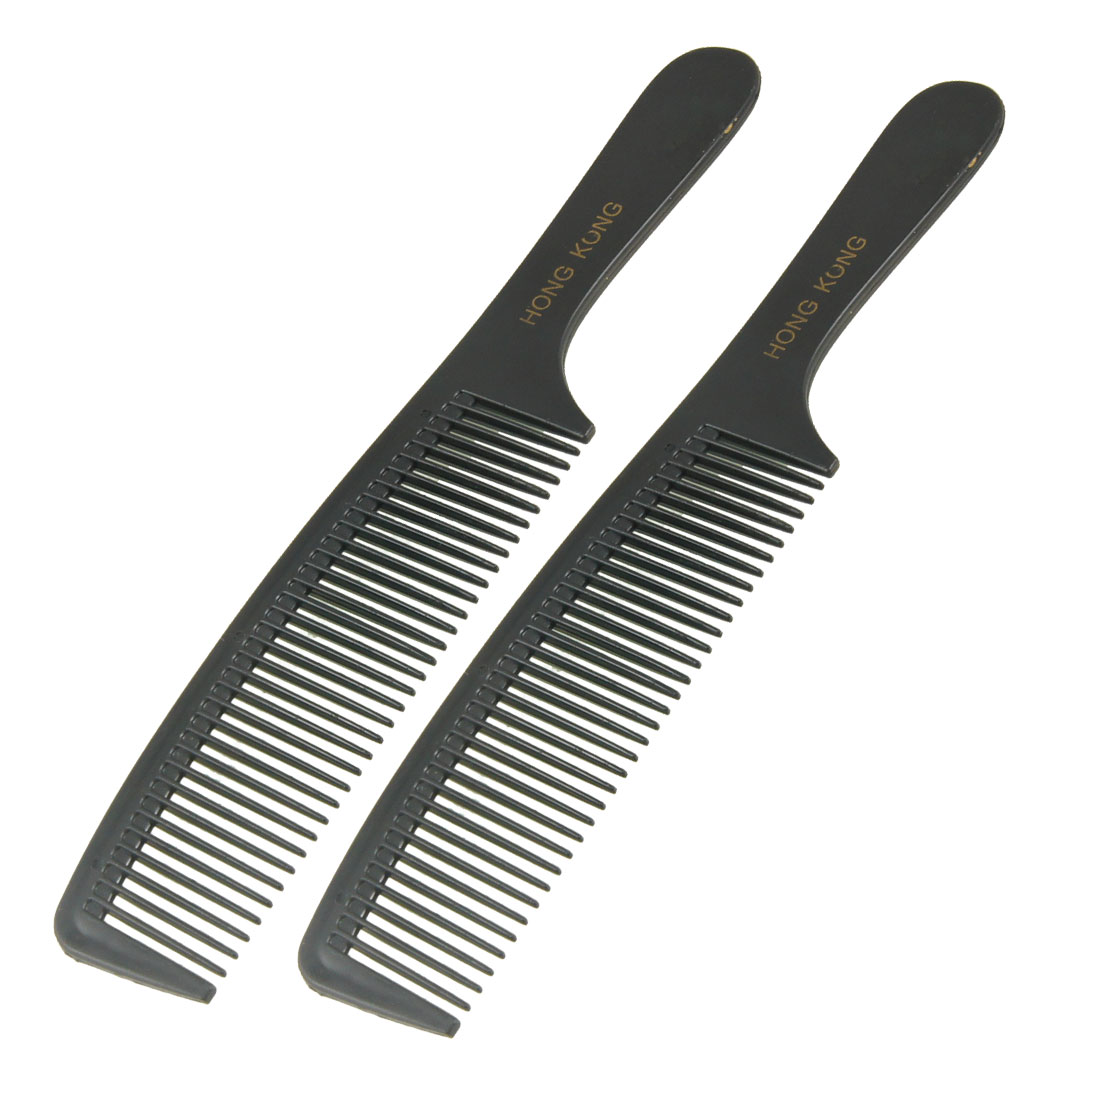 "Lady Beauty Tool 8.3"" Anti-static Black Plastic Handhold Hair Comb 2 Pcs"